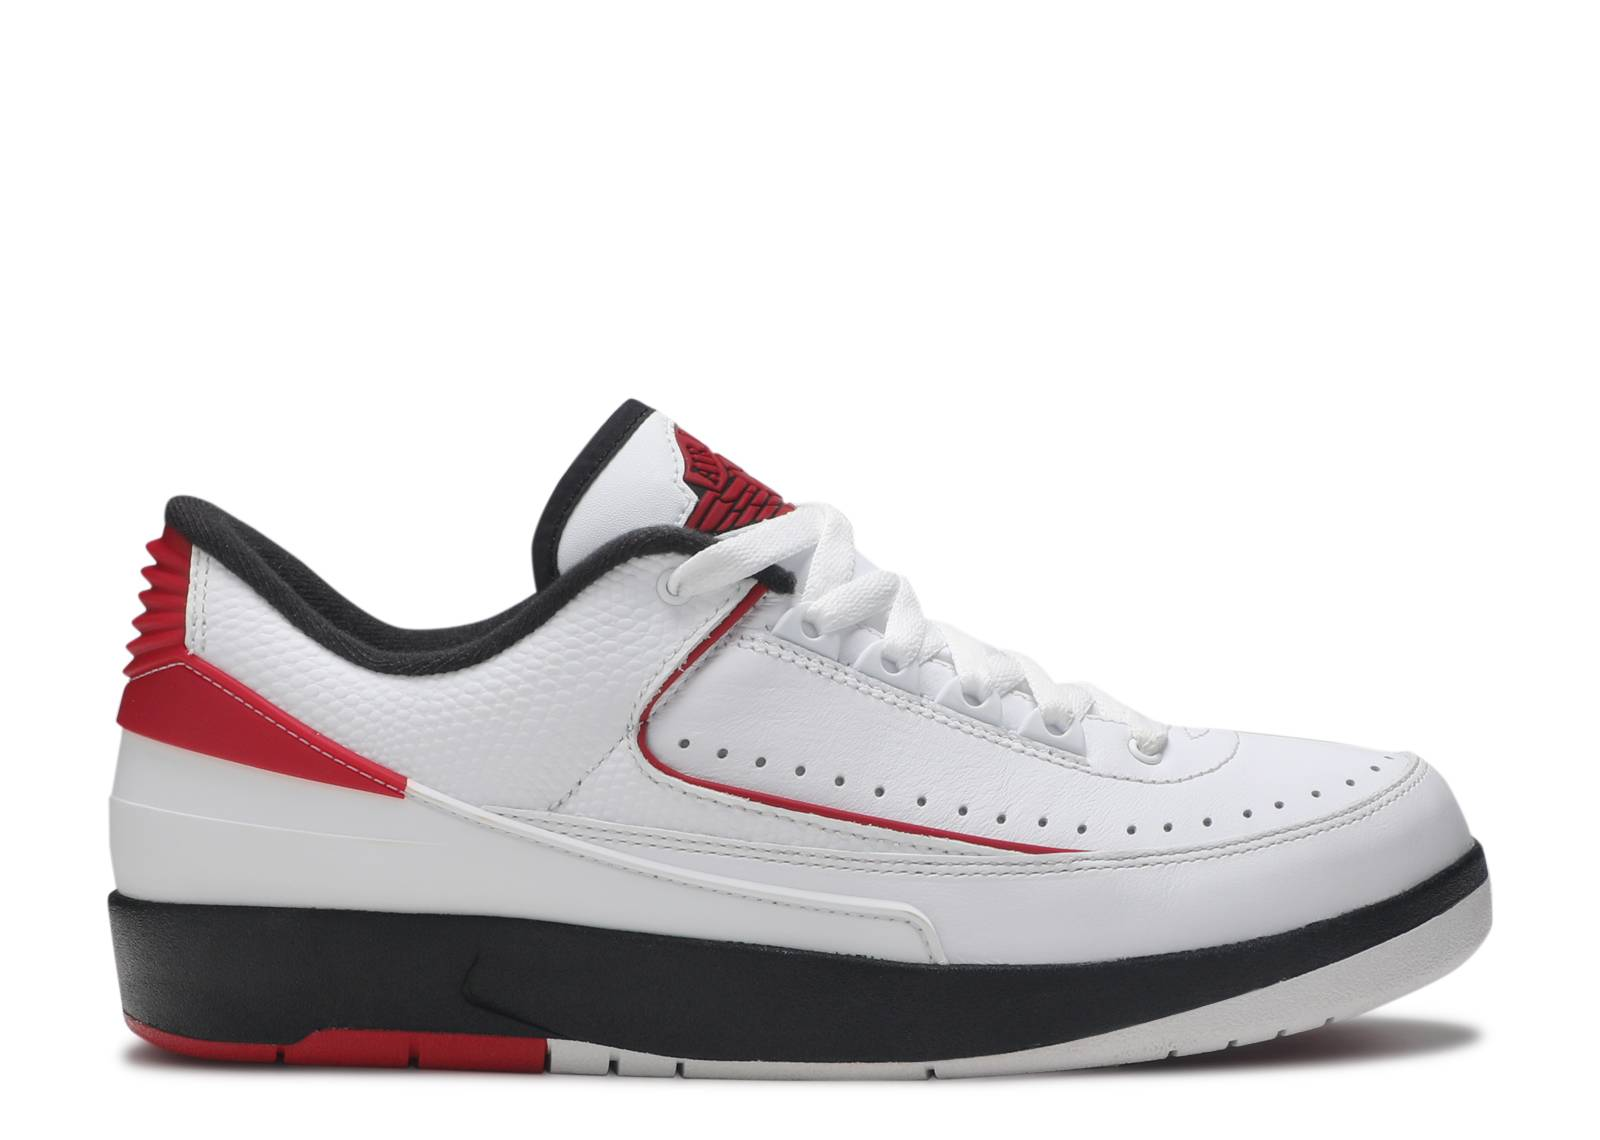 detailed look aed02 4d2ab air jordan 2 retro low